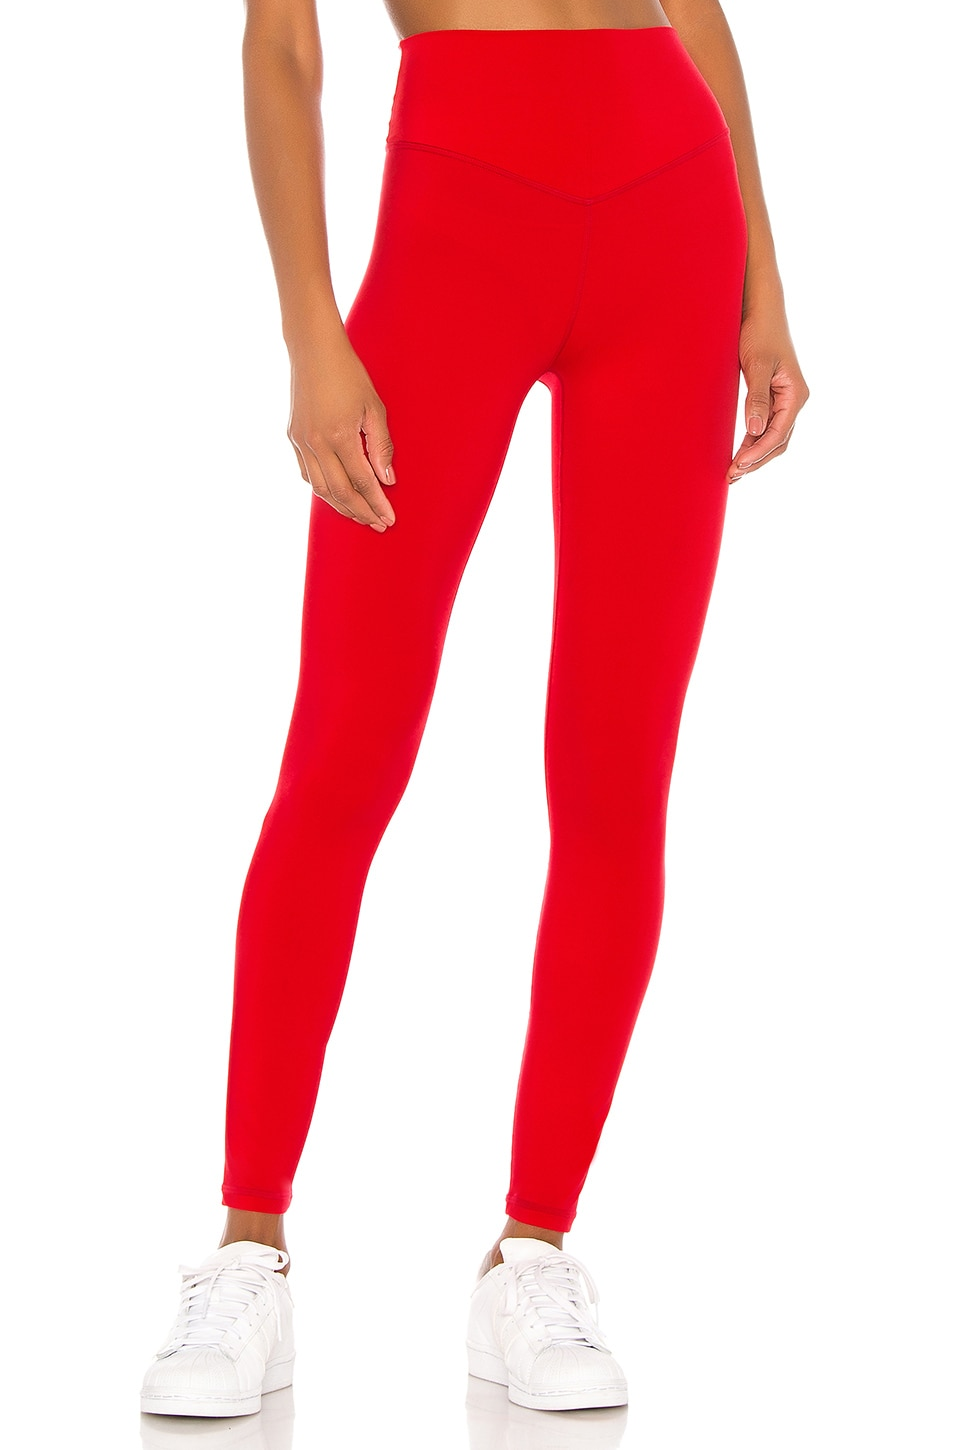 lovewave The Jackson Pant in Scarlet